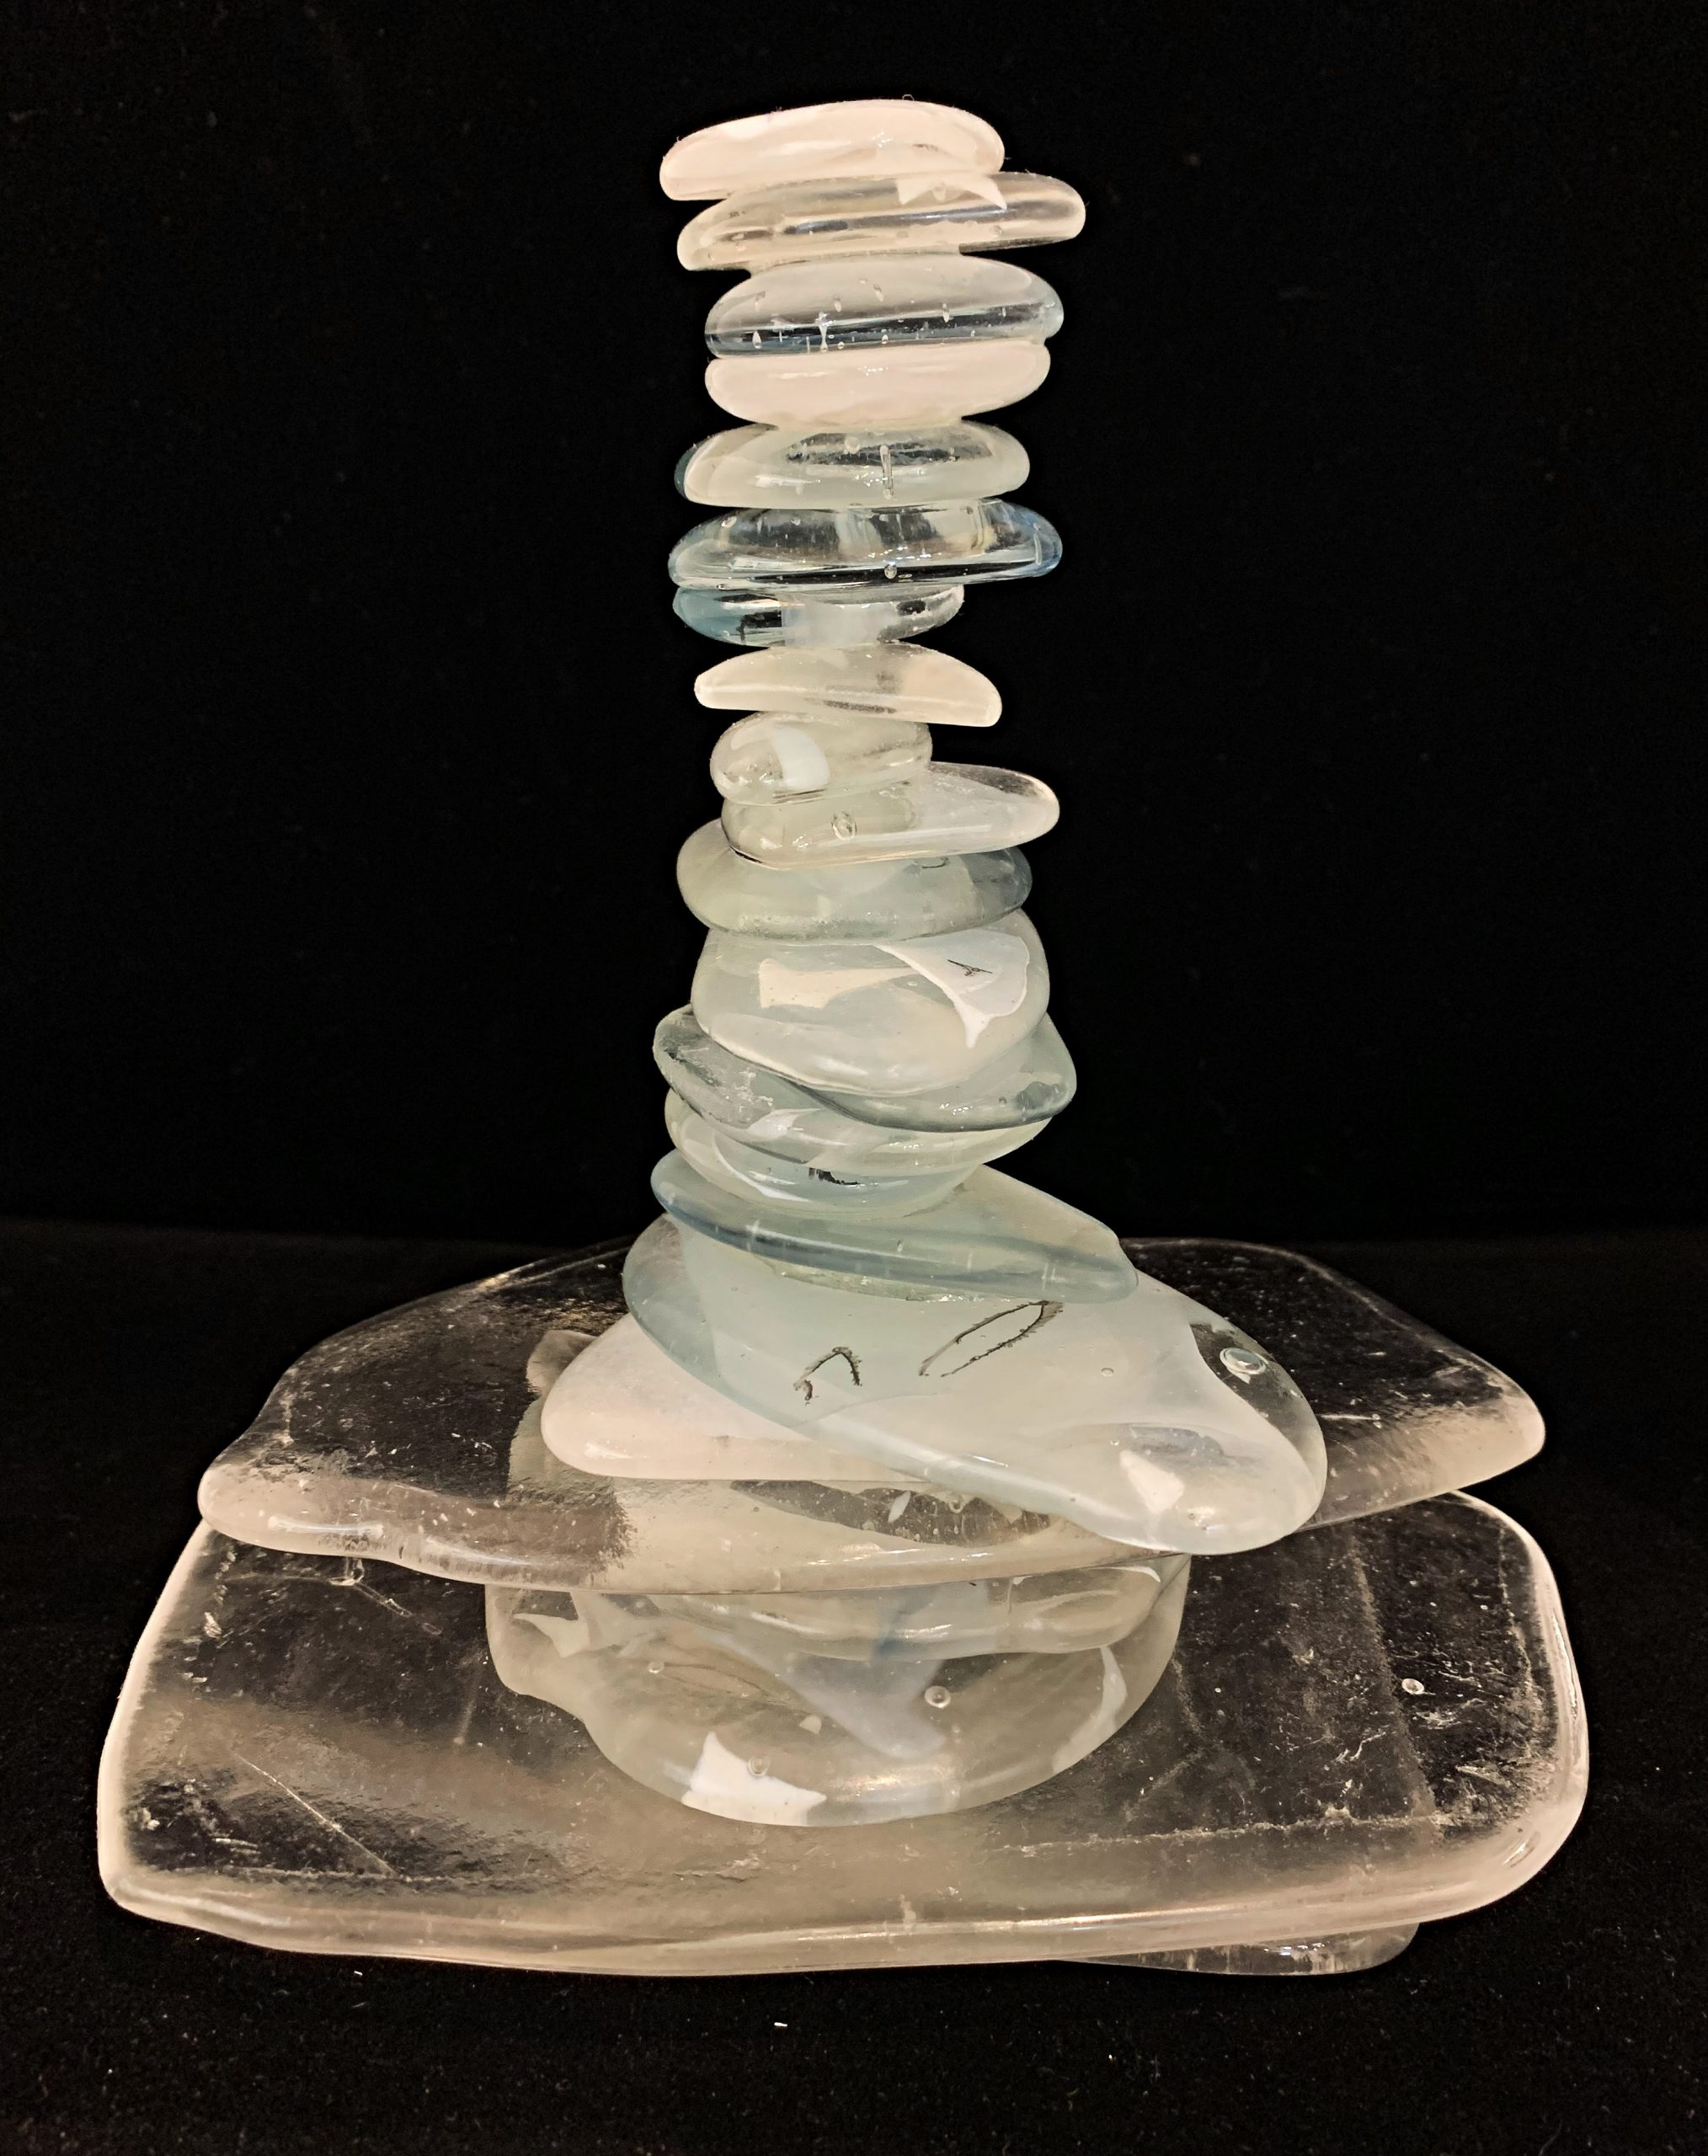 Rocky Mountain Cairn 59, cast glass cairn sculpture by Heather Cuell | Effusion Art Gallery + Cast Glass Studio, Invermere BC